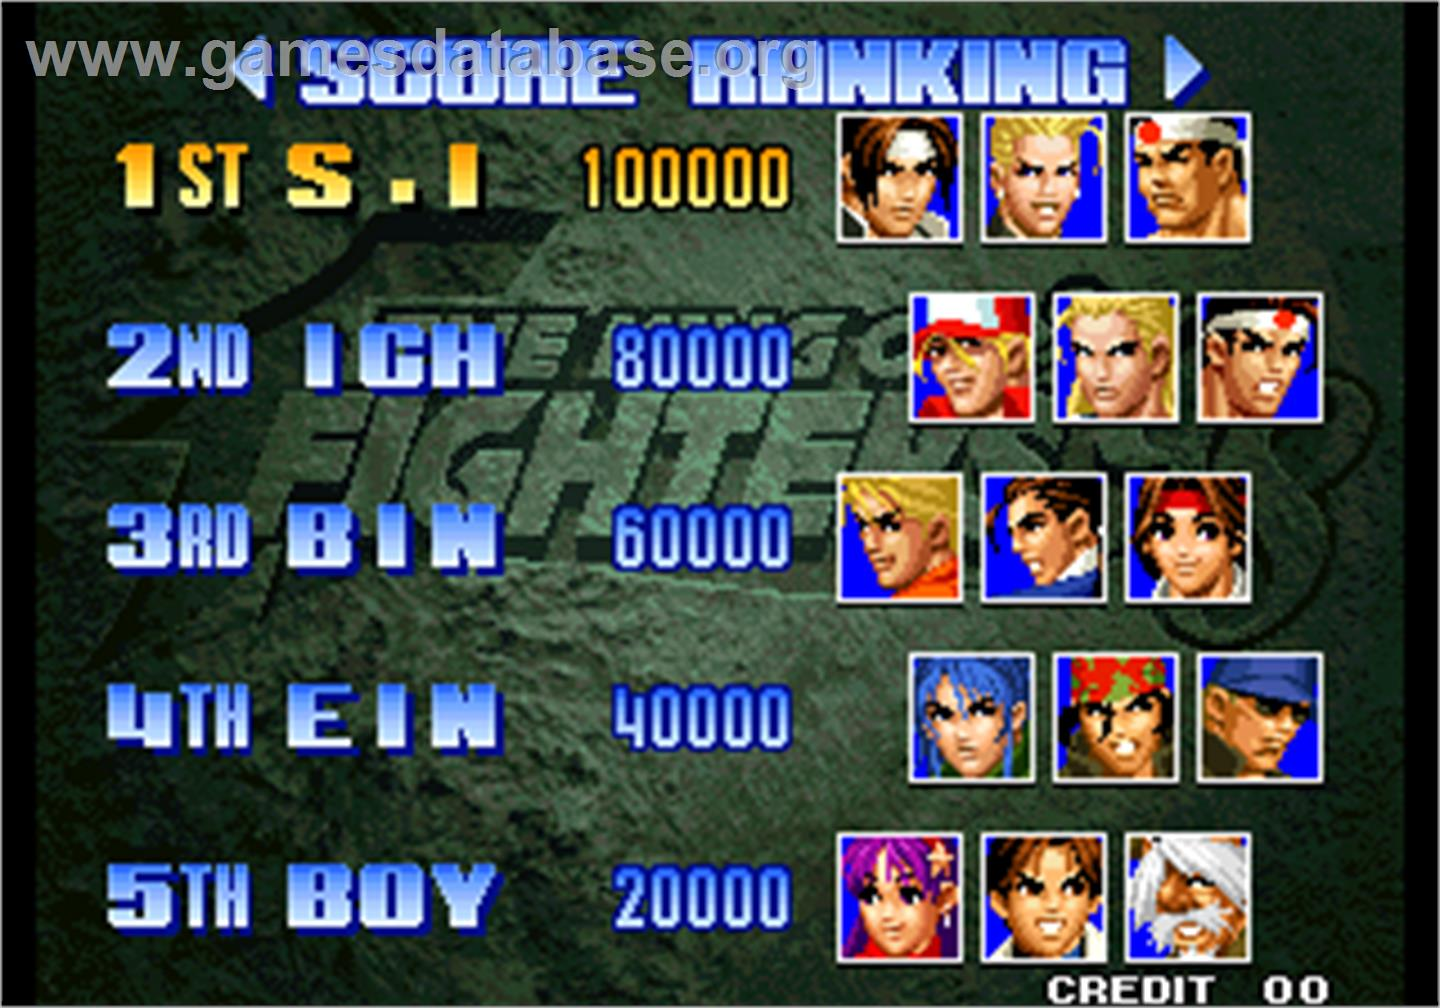 The King of Fighters '98 - The Slugfest / King of Fighters '98 - dream match never ends - Arcade - Artwork - High Score Screen